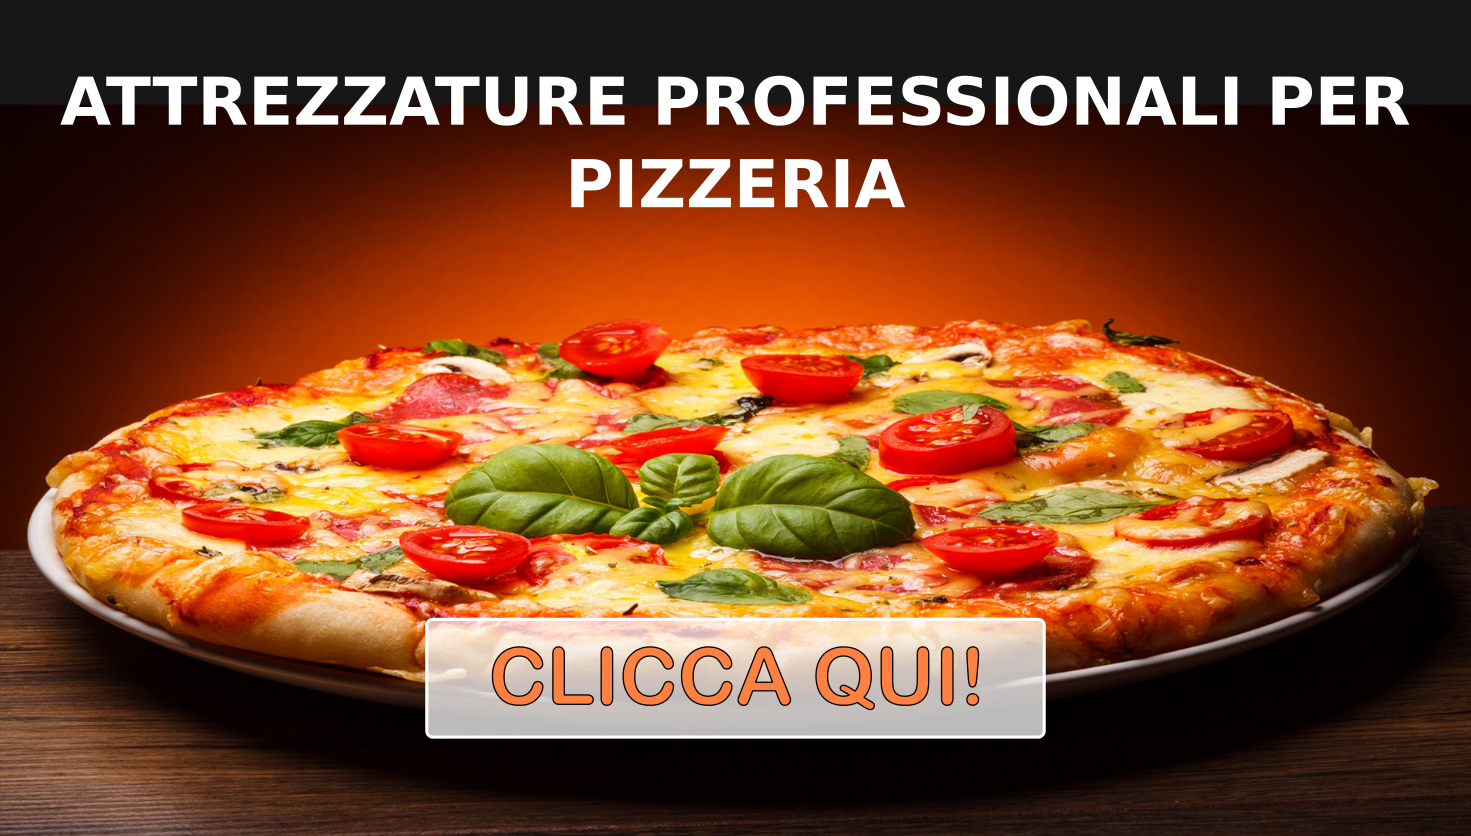 Attrezzature da pizzeria Abaristo.it